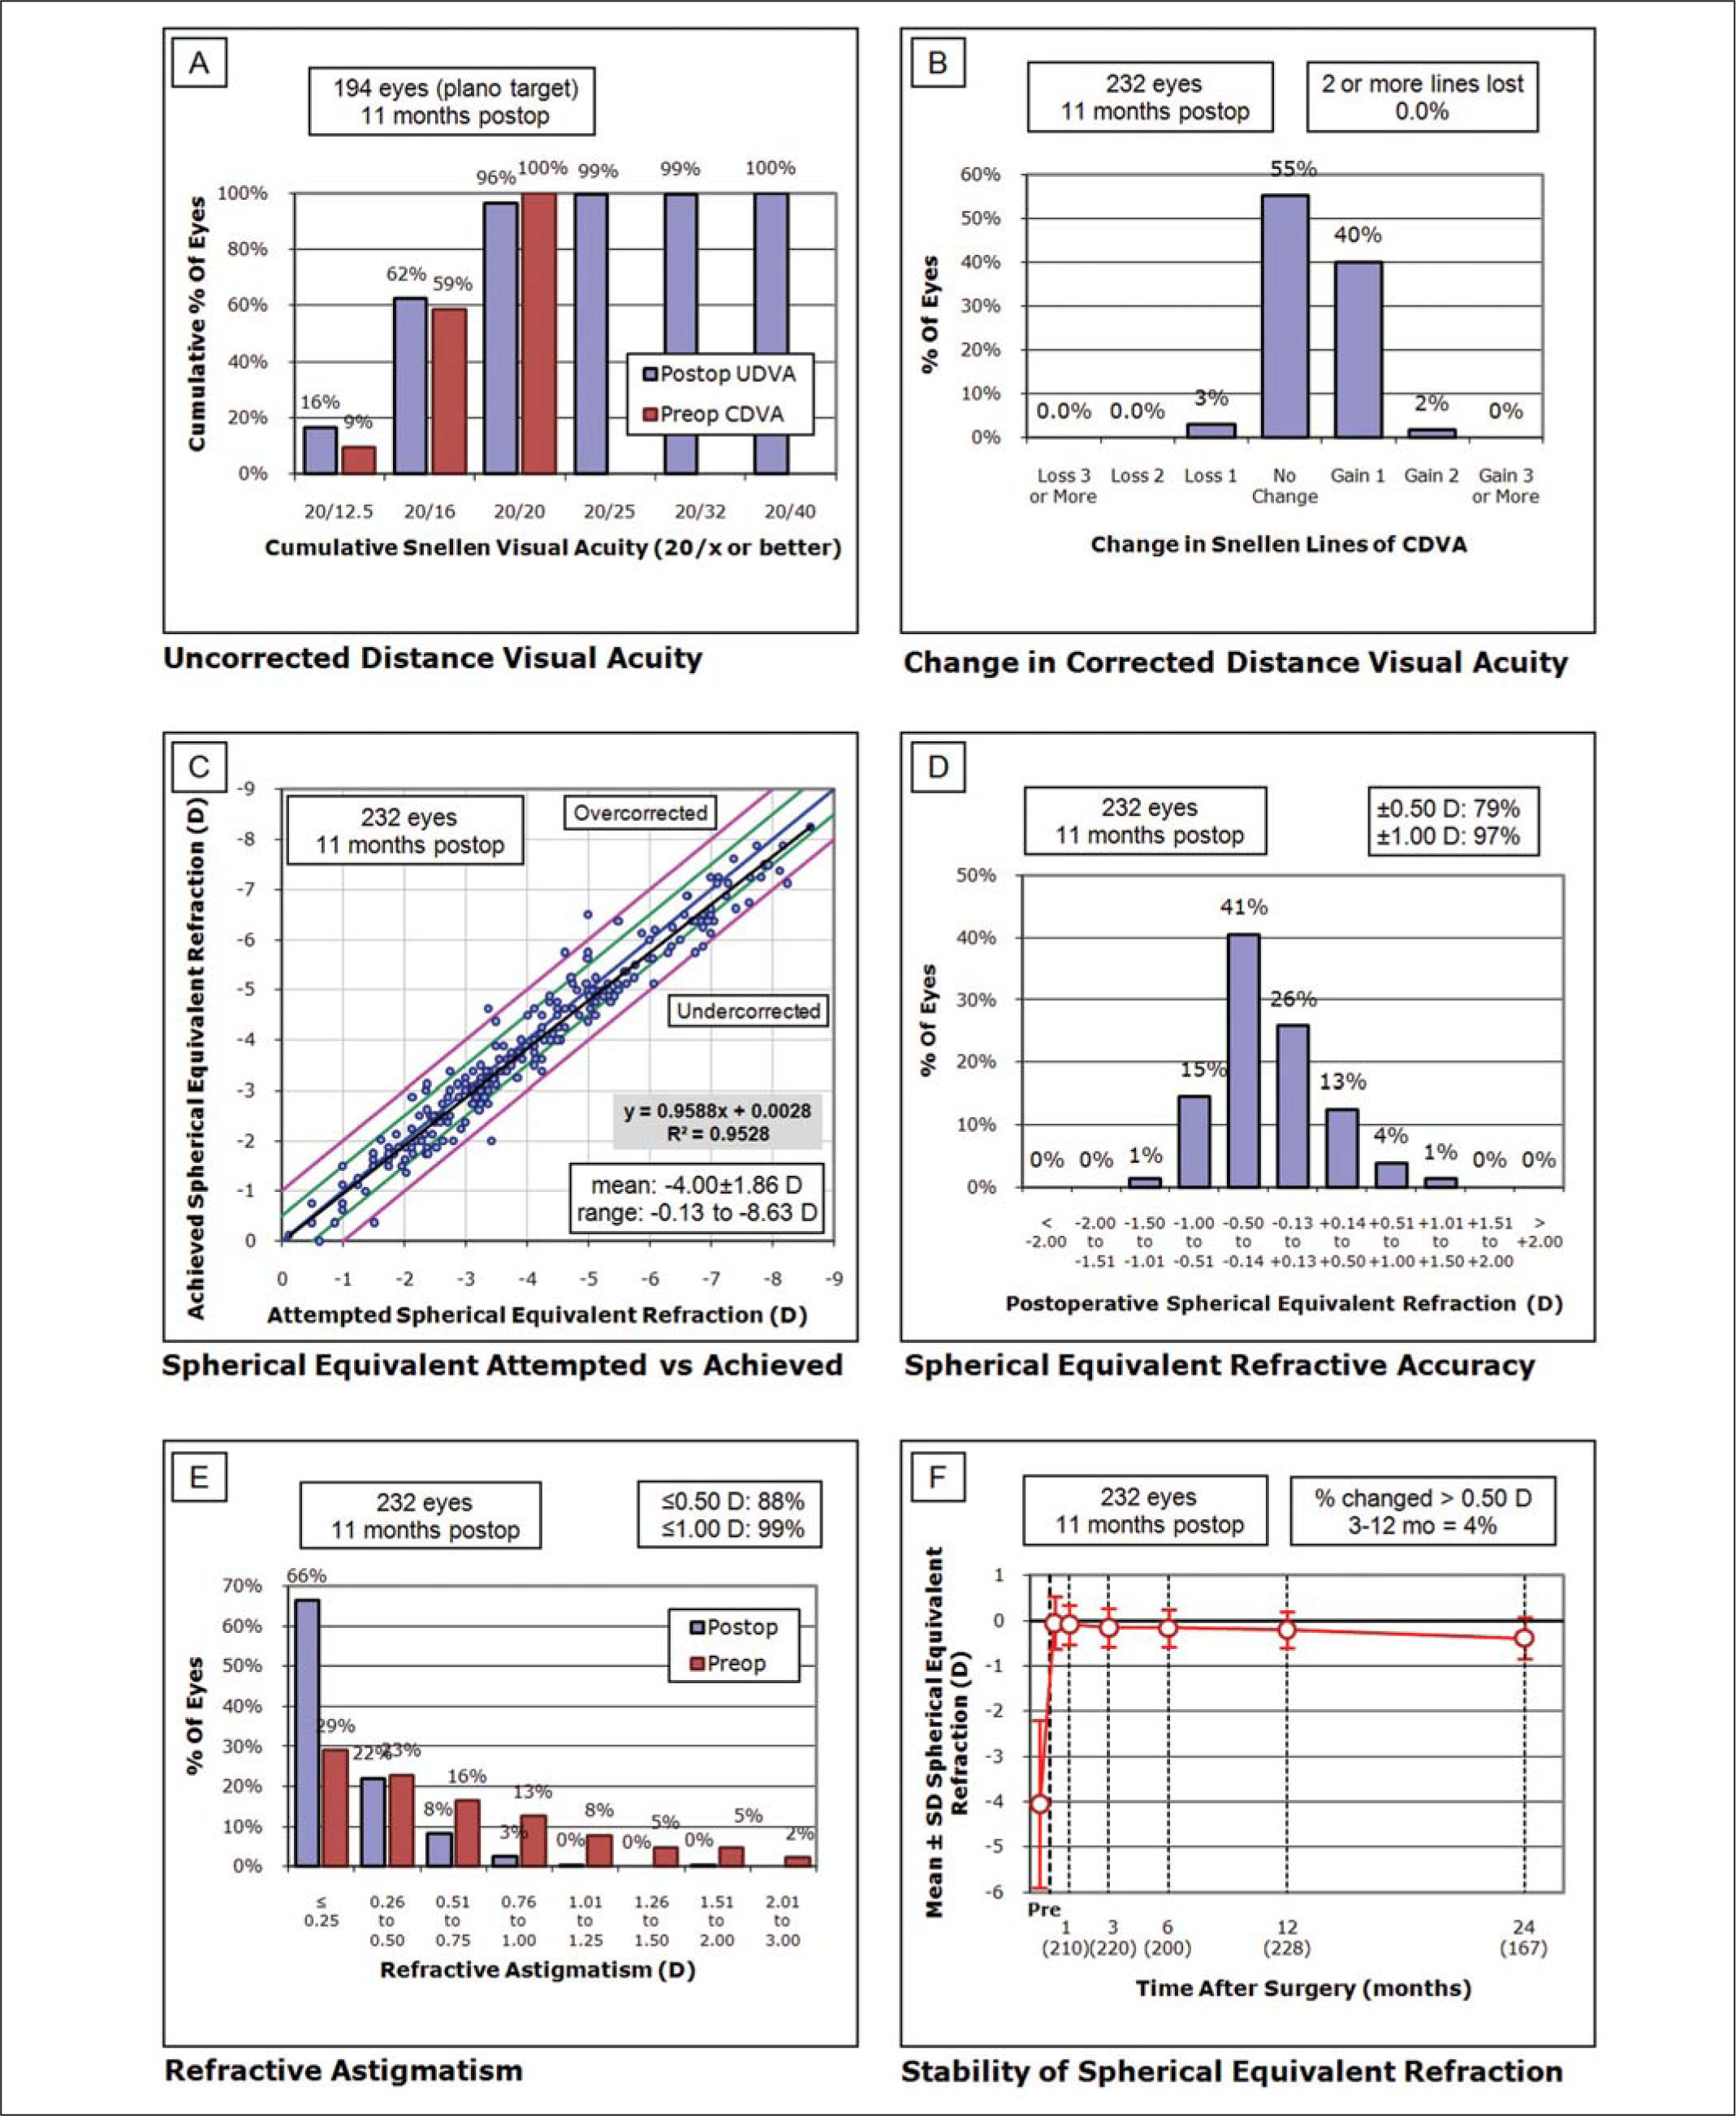 Standard Graphs for Reporting Refractive Surgery Outcomes (2011). UDVA = Uncorrected Distance Visual Acuity, CDVA = Corrected Distance Visual Acuity